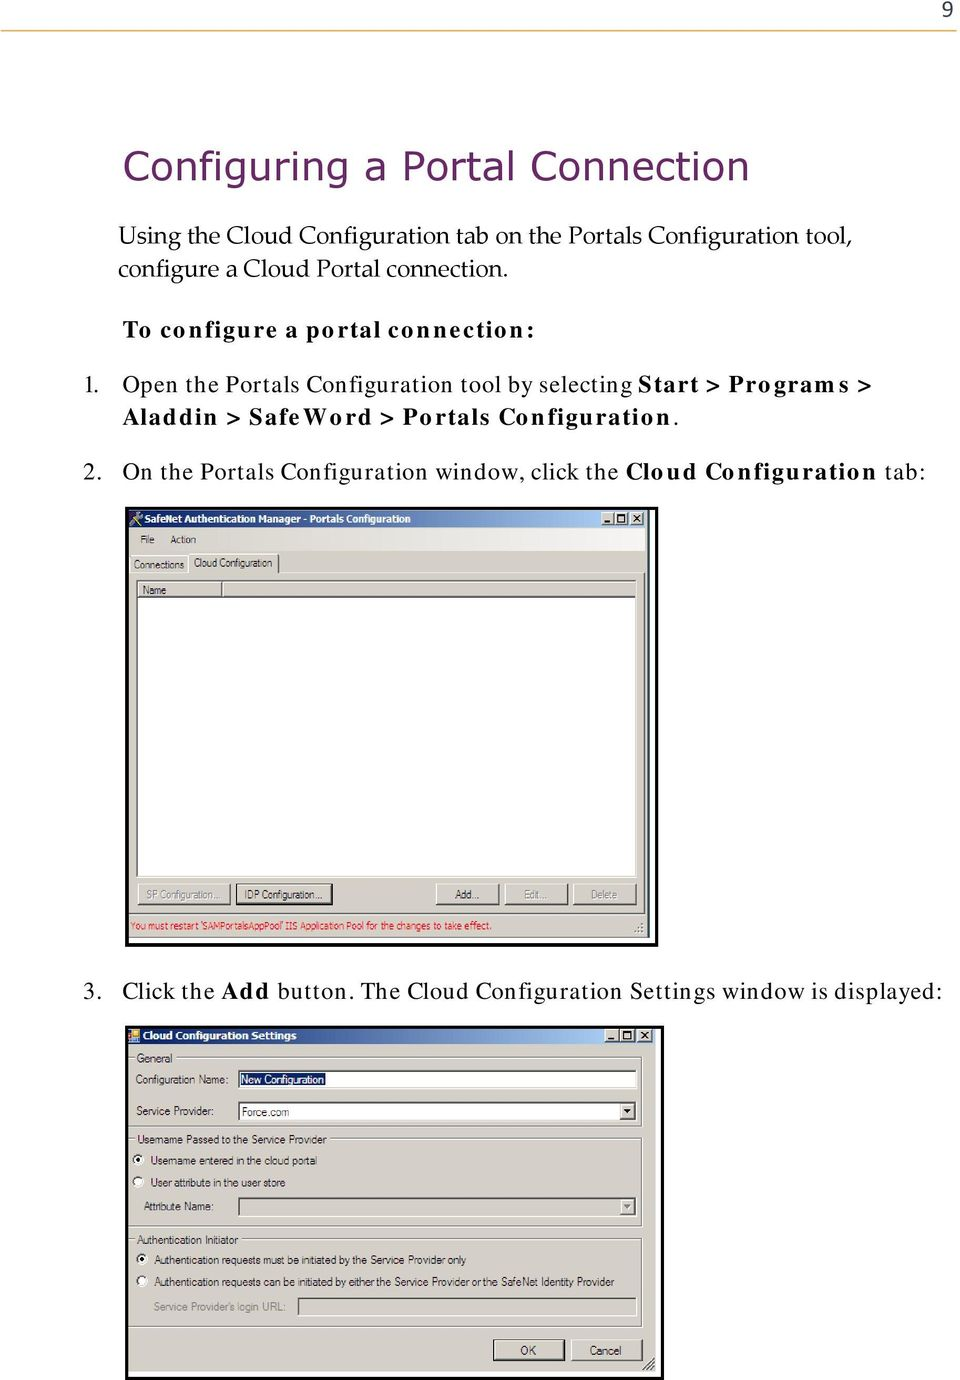 Open the Portals Configuration tool by selecting Start > Programs > Aladdin > SafeWord > Portals Configuration.